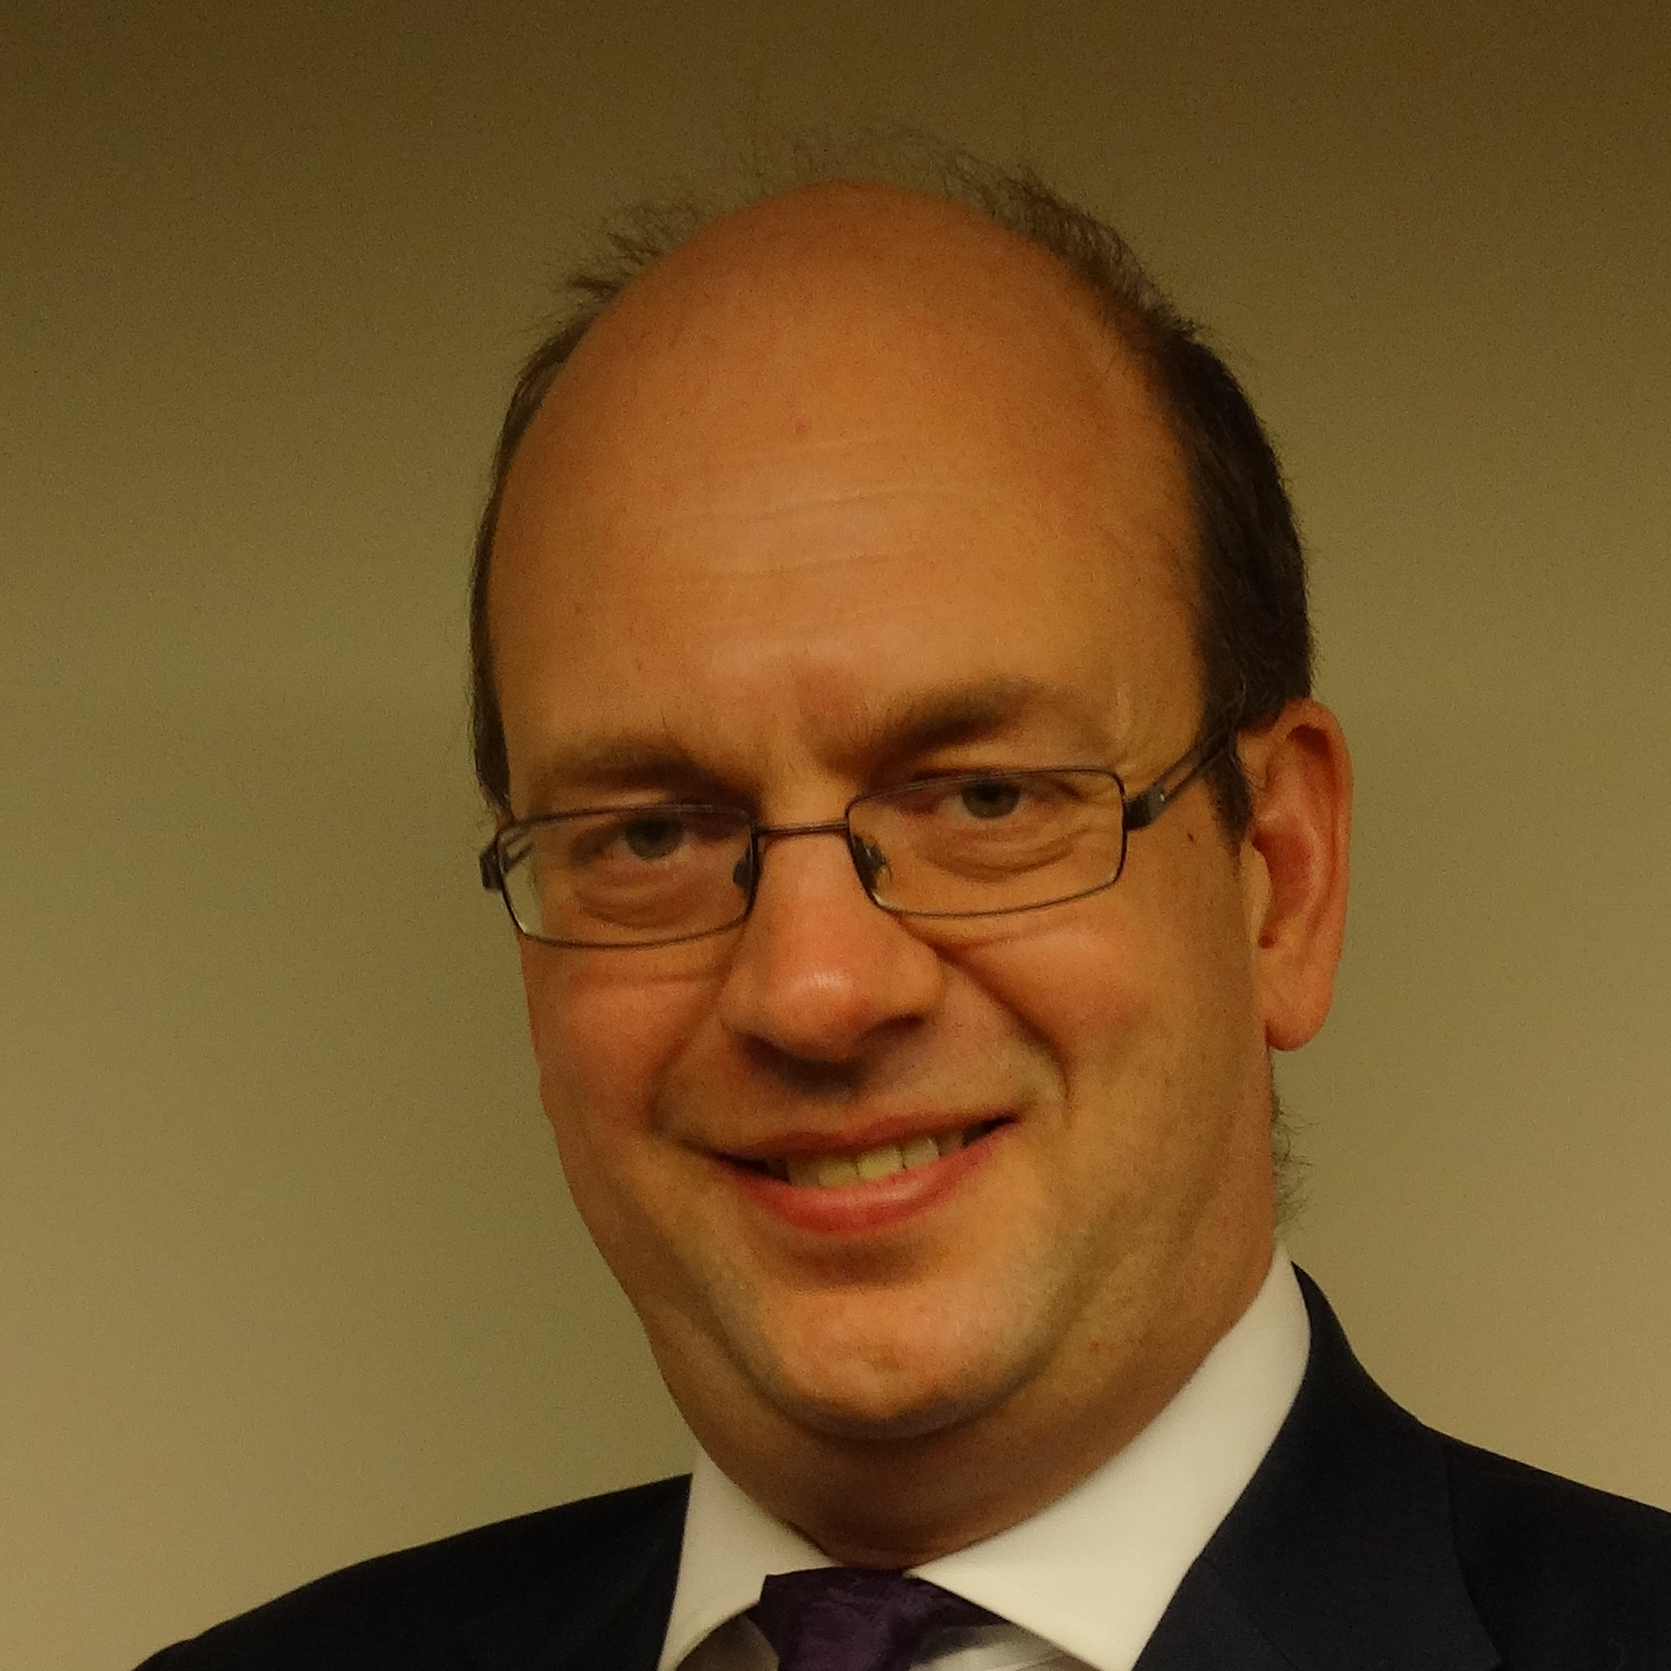 mark-reckless-cropped.jpg